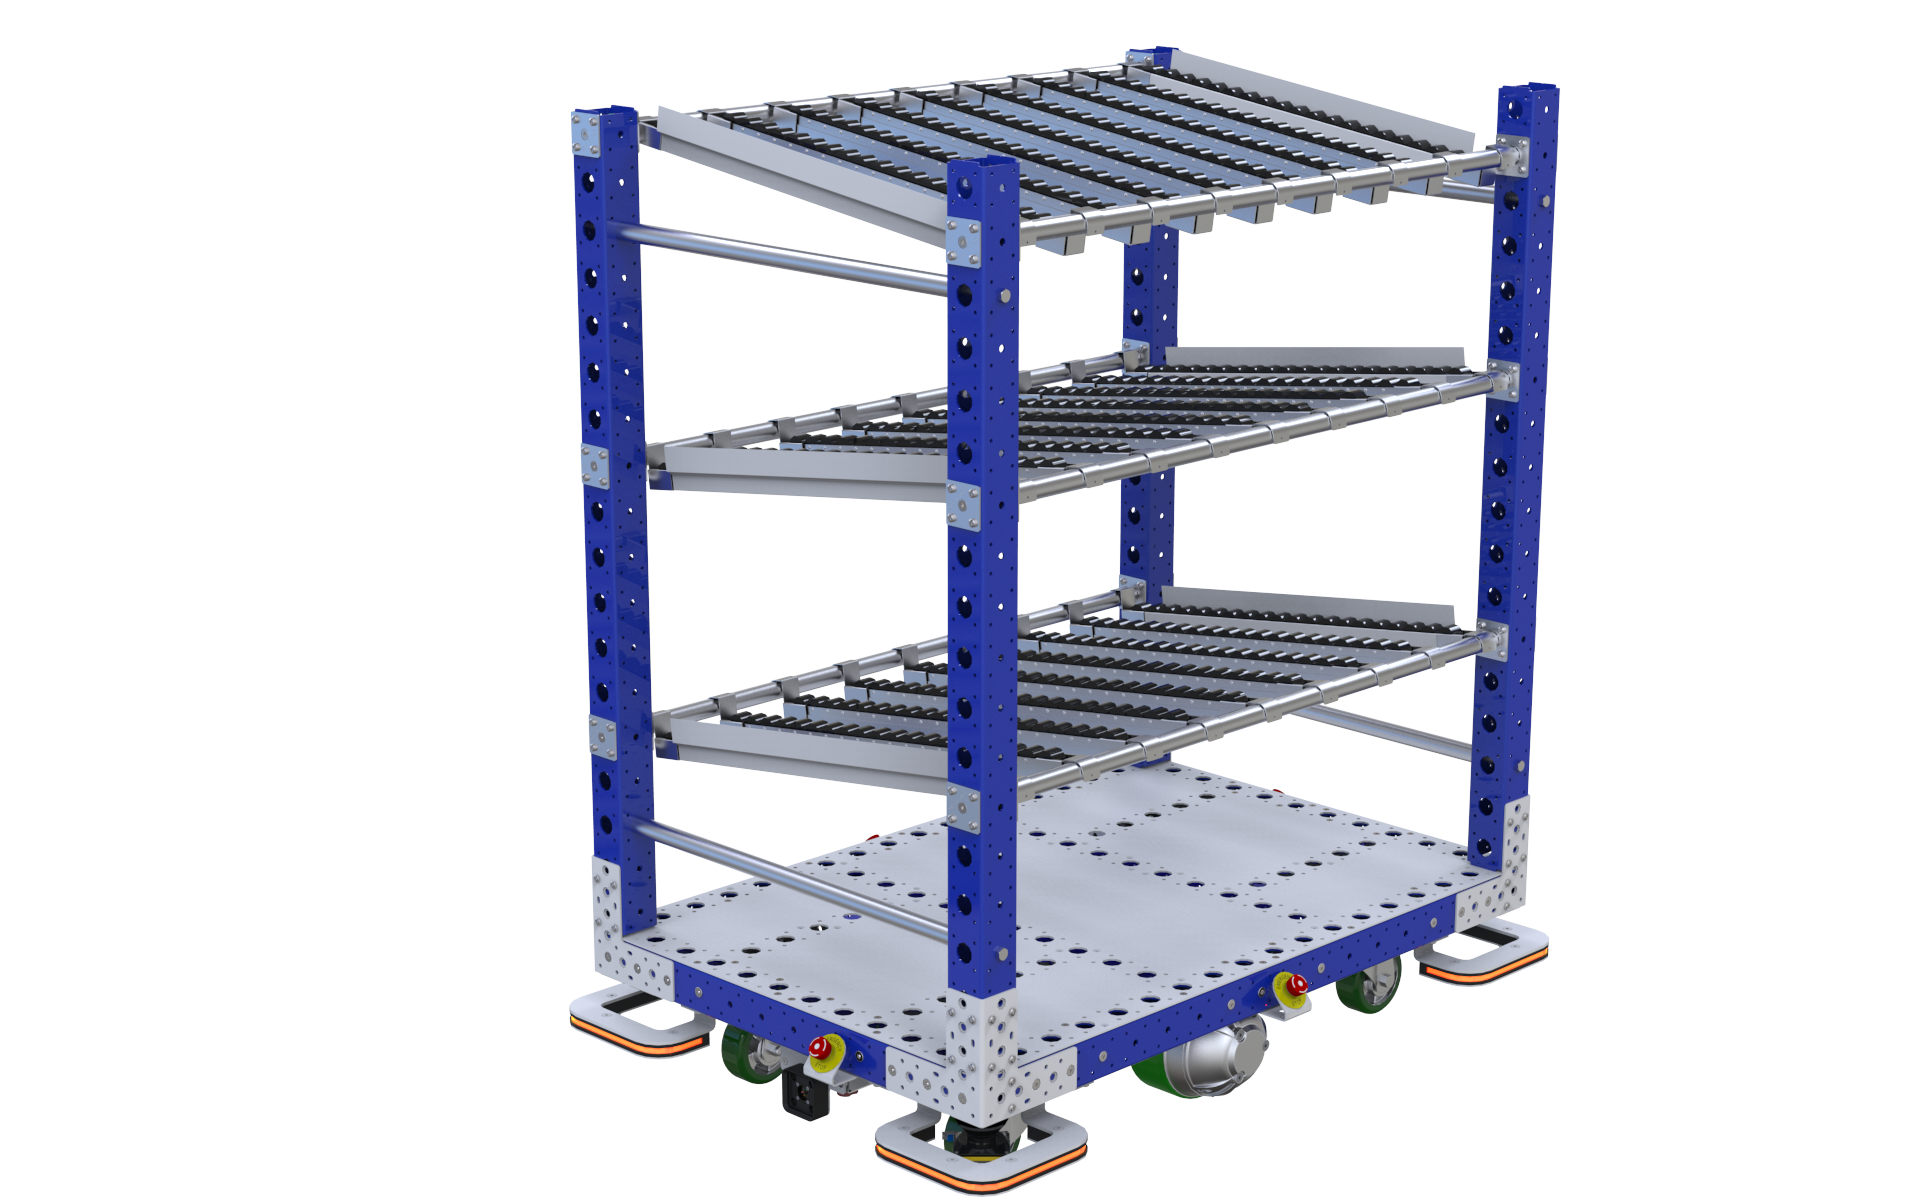 eQart - Flow Rack EU 840 x 1260 mm